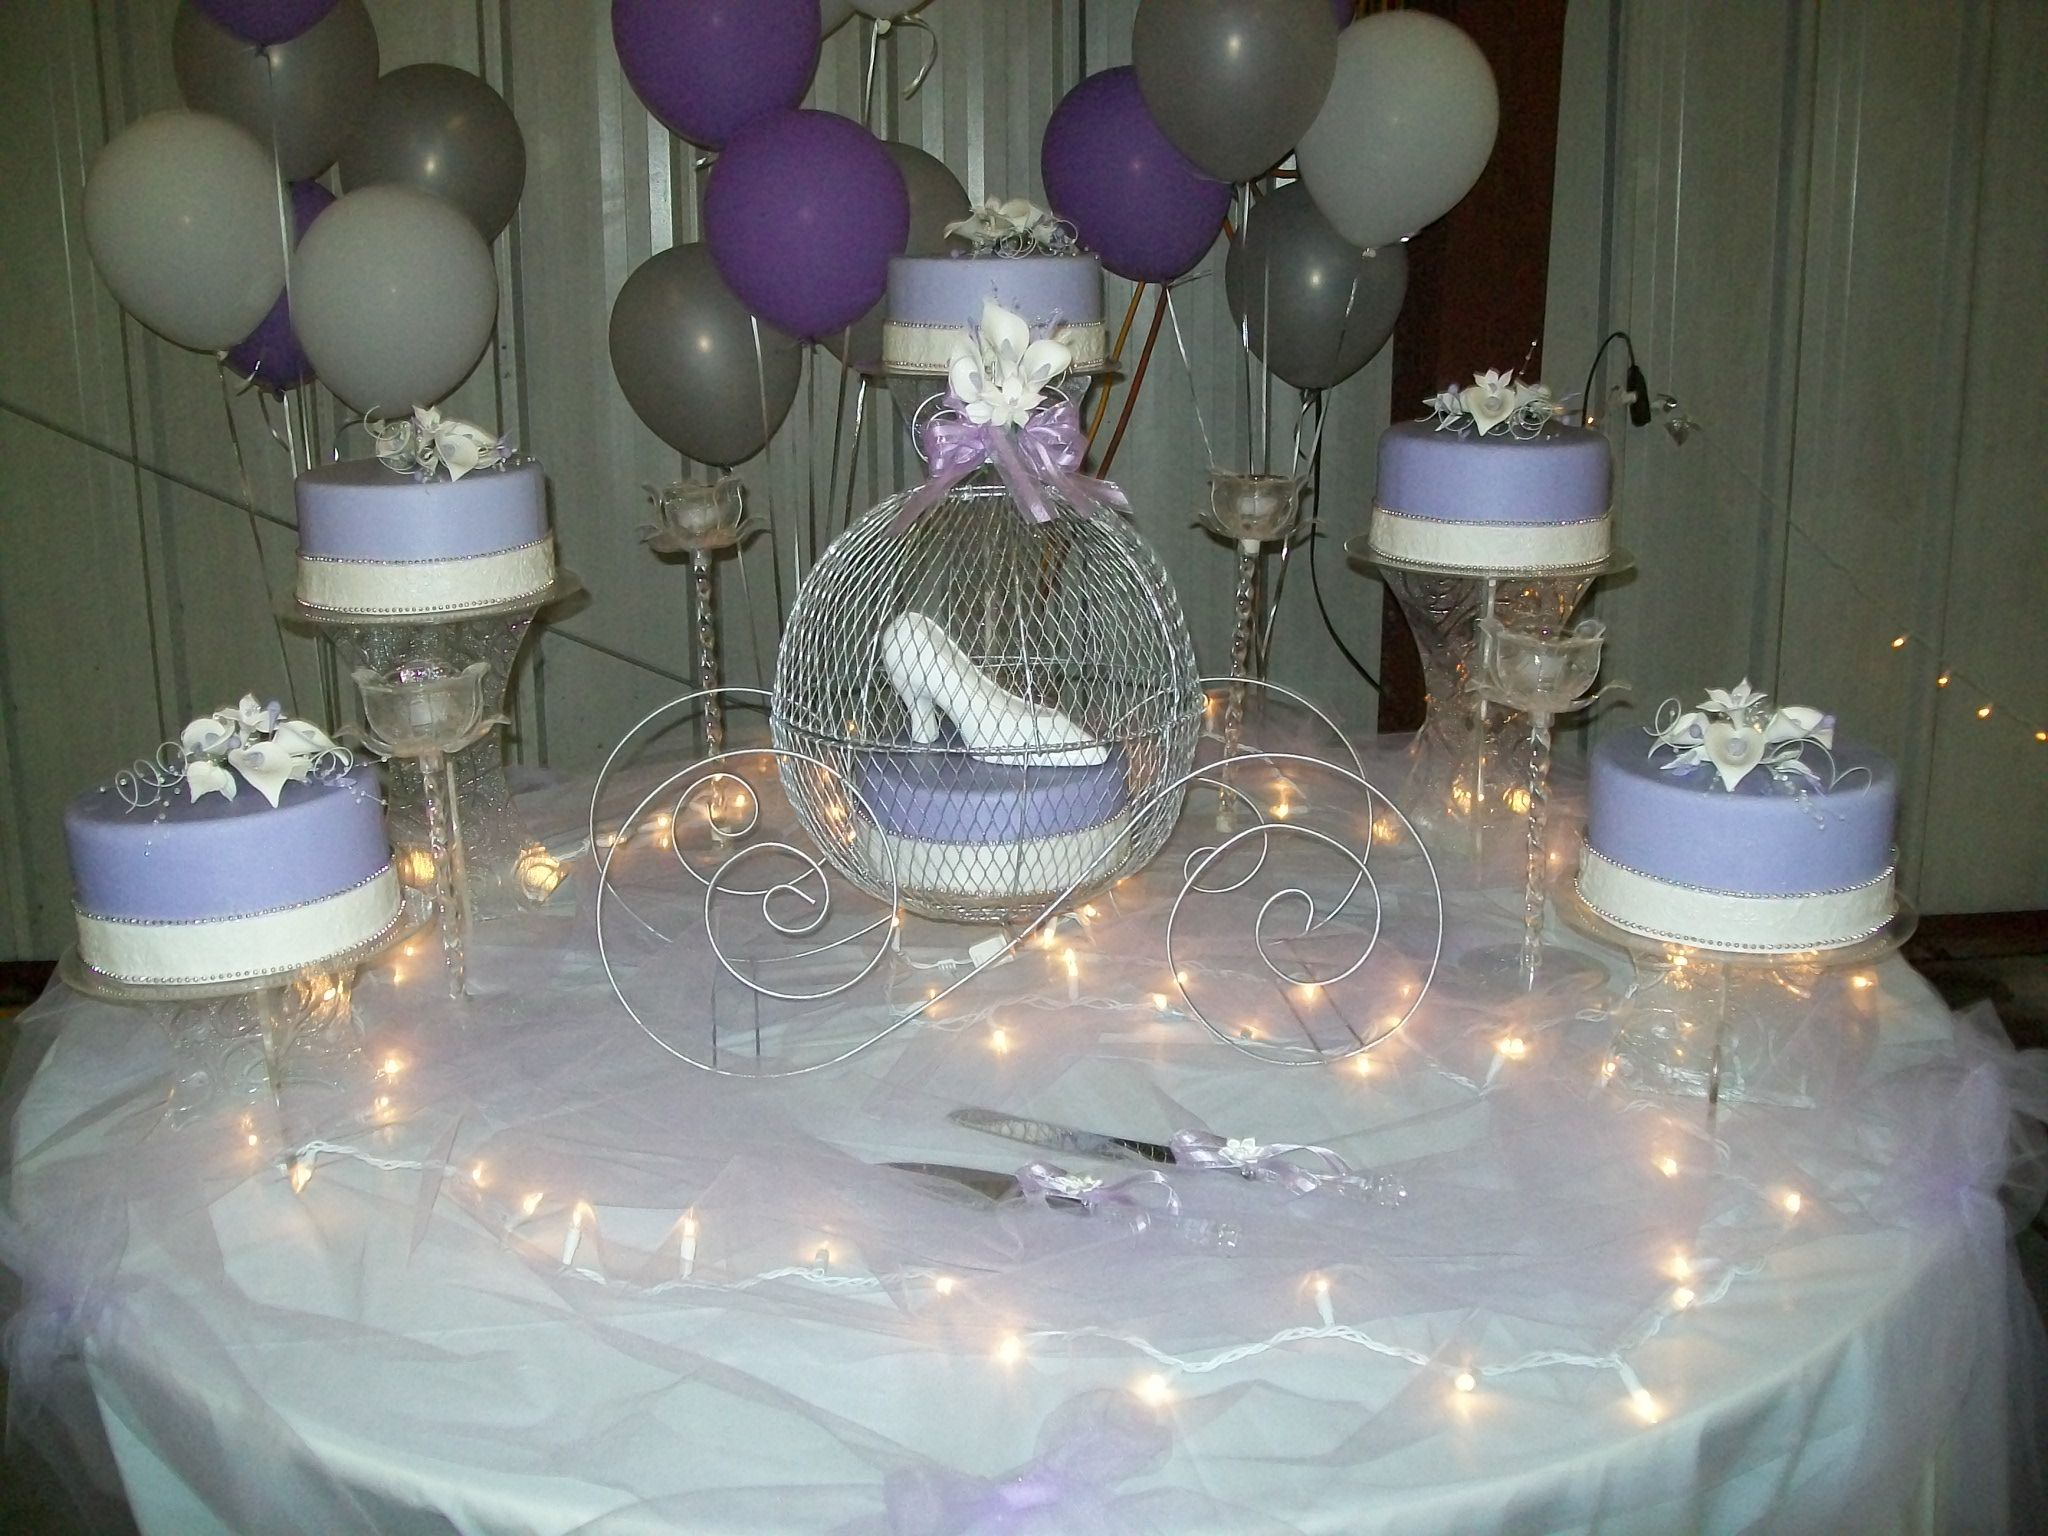 Best 25+ Cinderella sweet 16 ideas on Pinterest | Cinderella ...